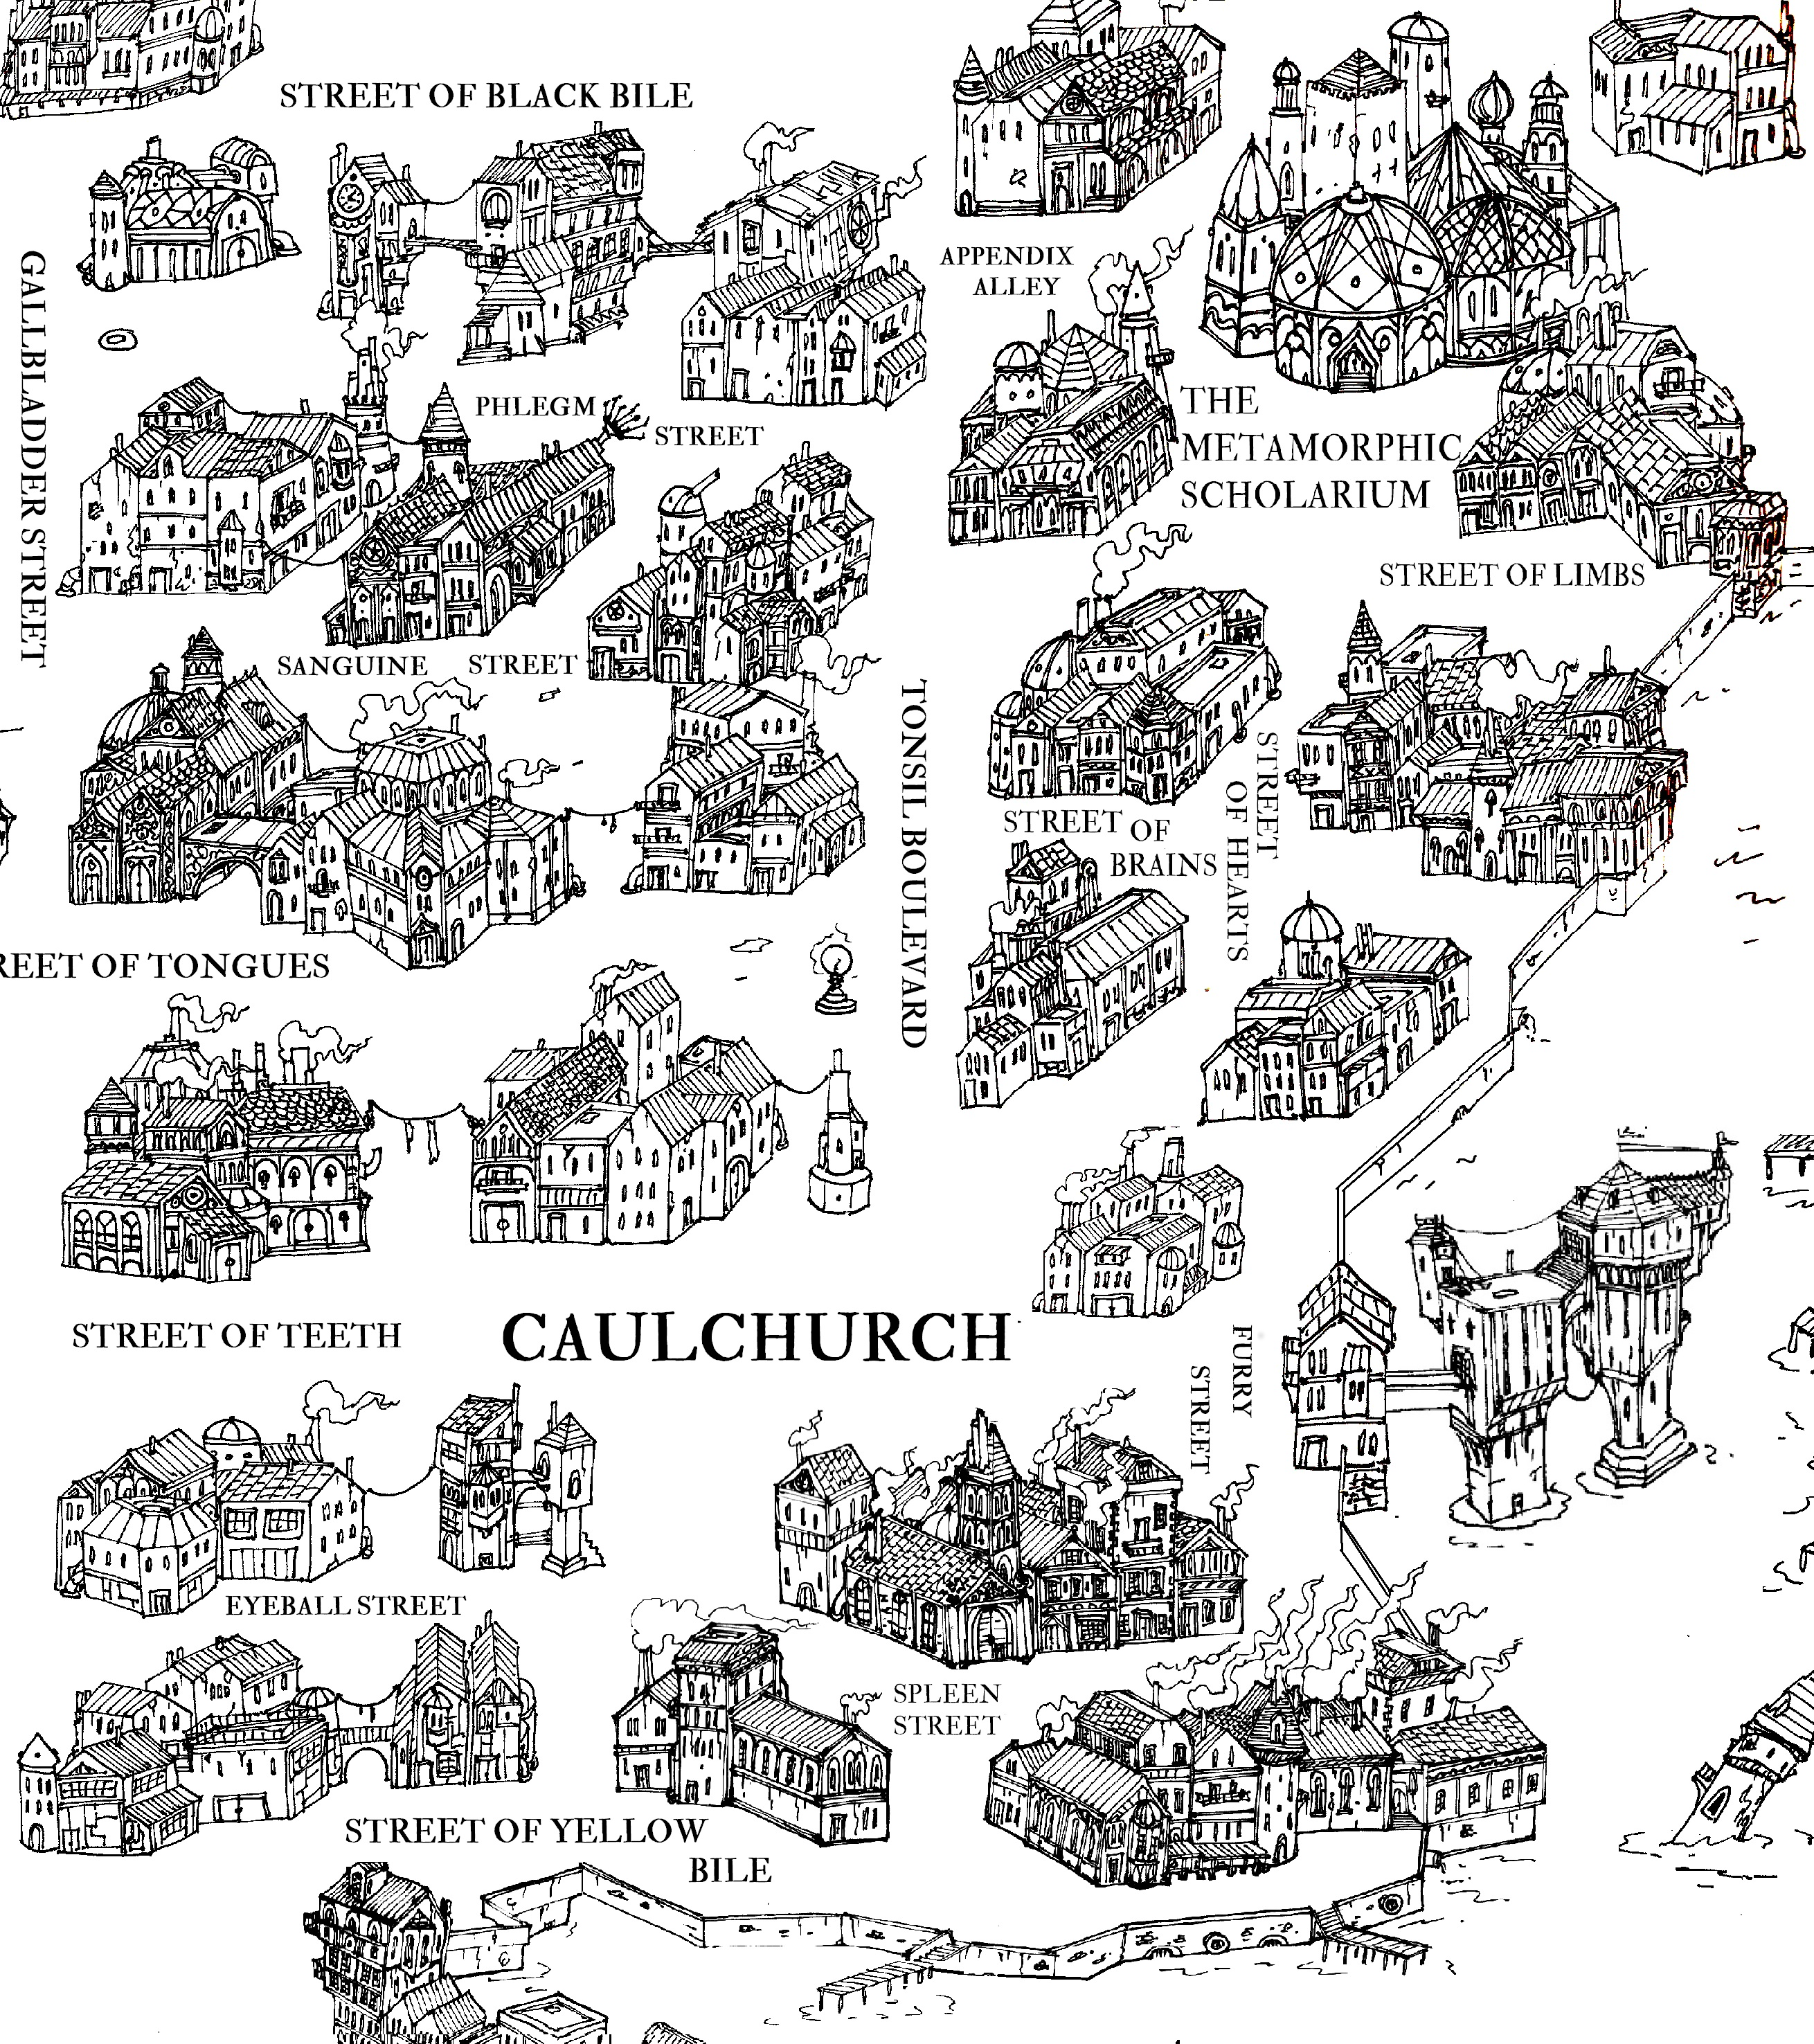 caulchurch